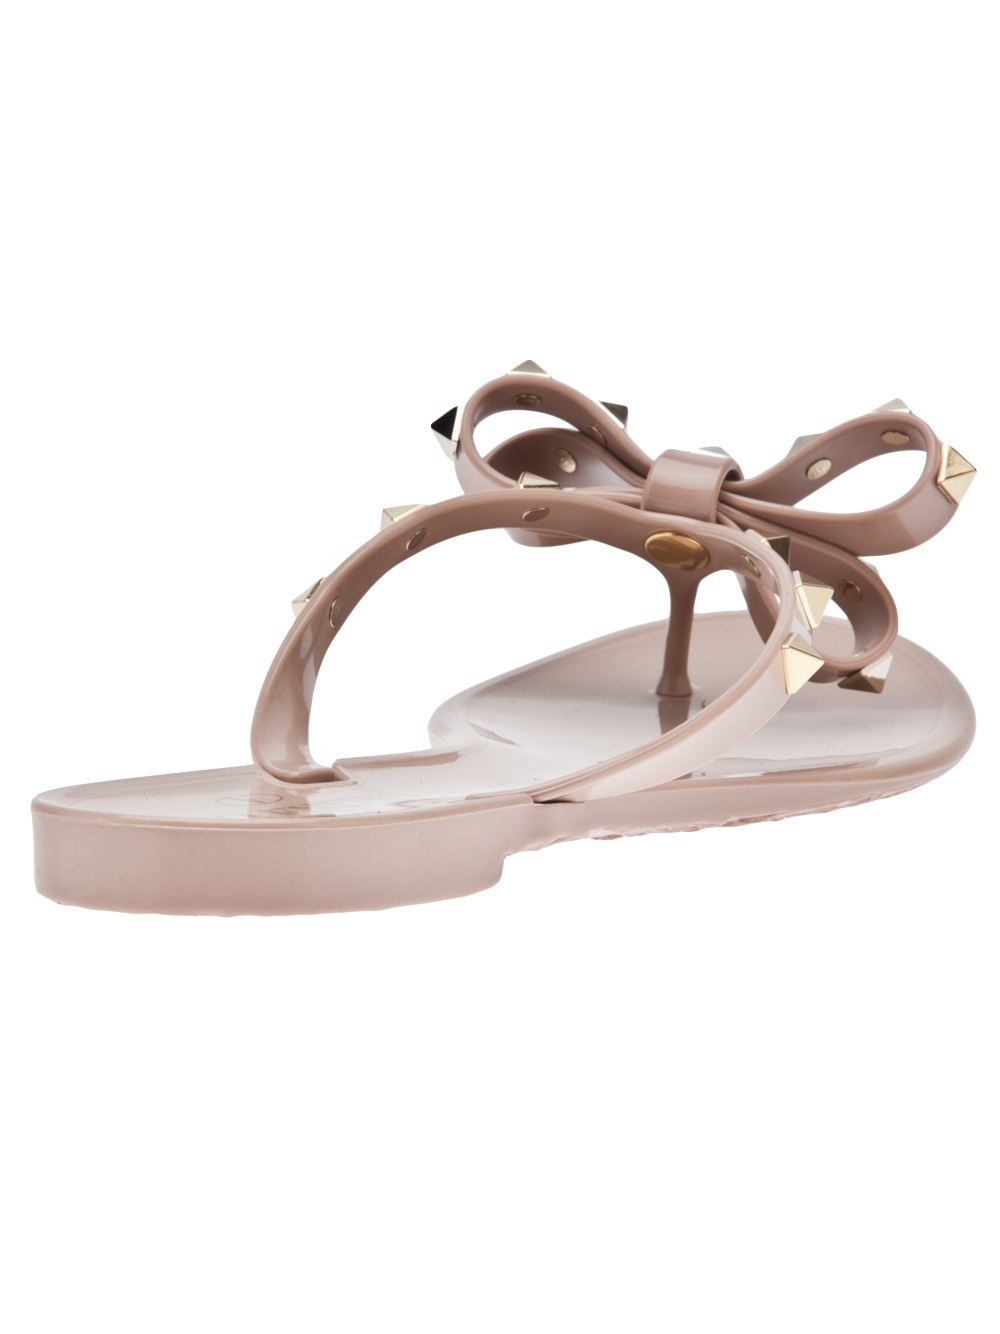 Valentino Rockstud Bow Sandals In Cream Natural - Lyst-9333